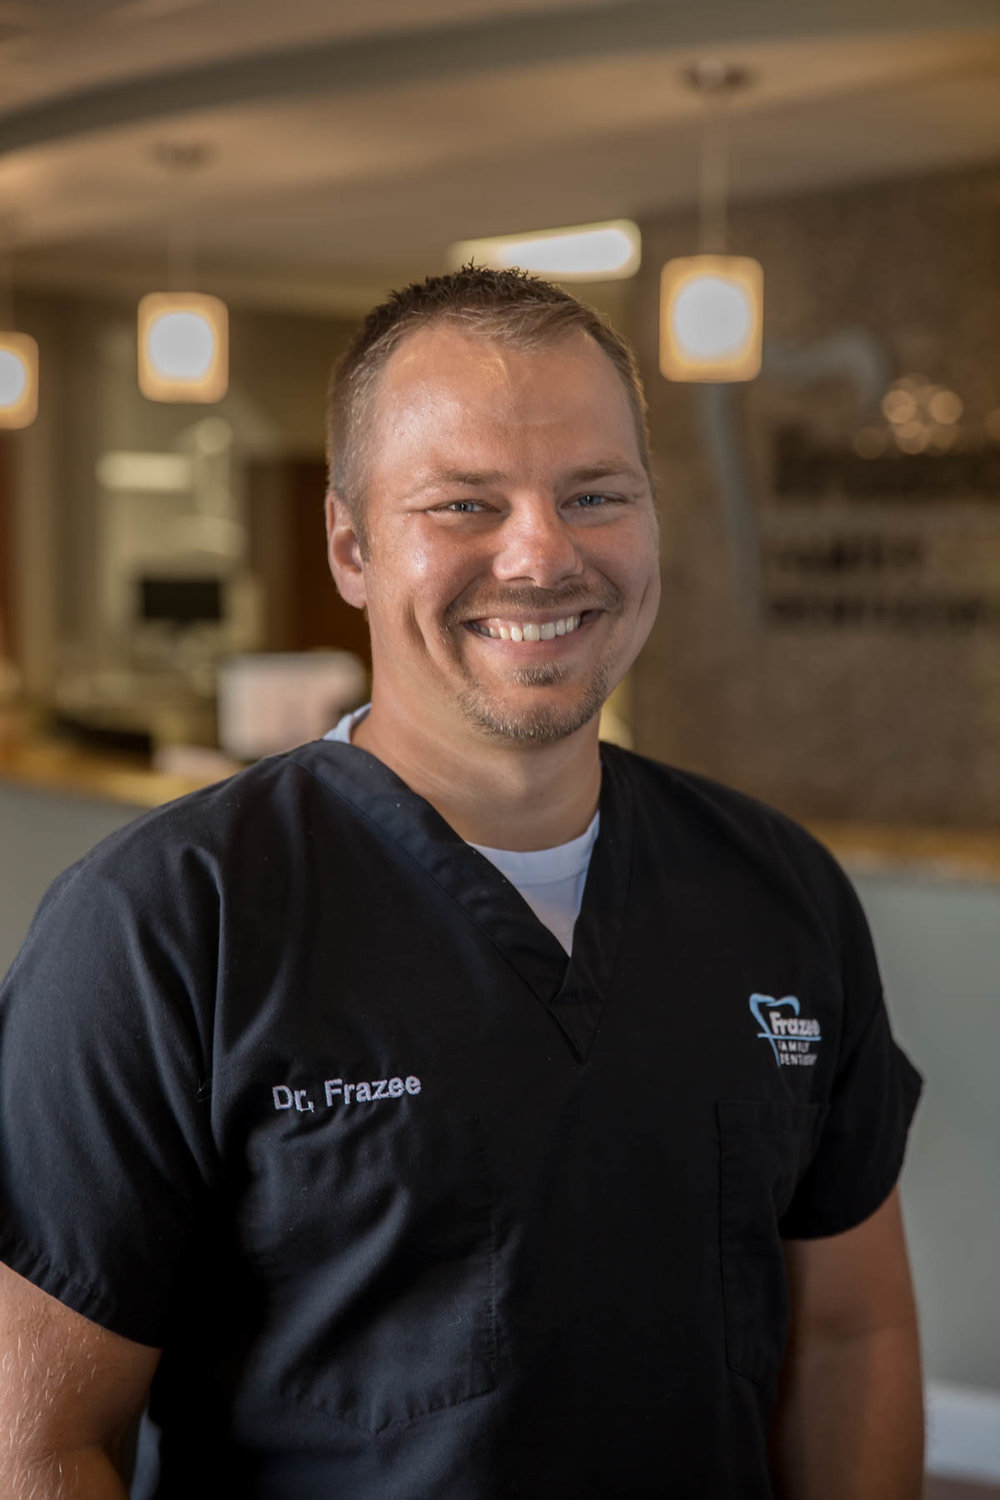 Meet Dr. Frazee at Frazee Family Dentistry.